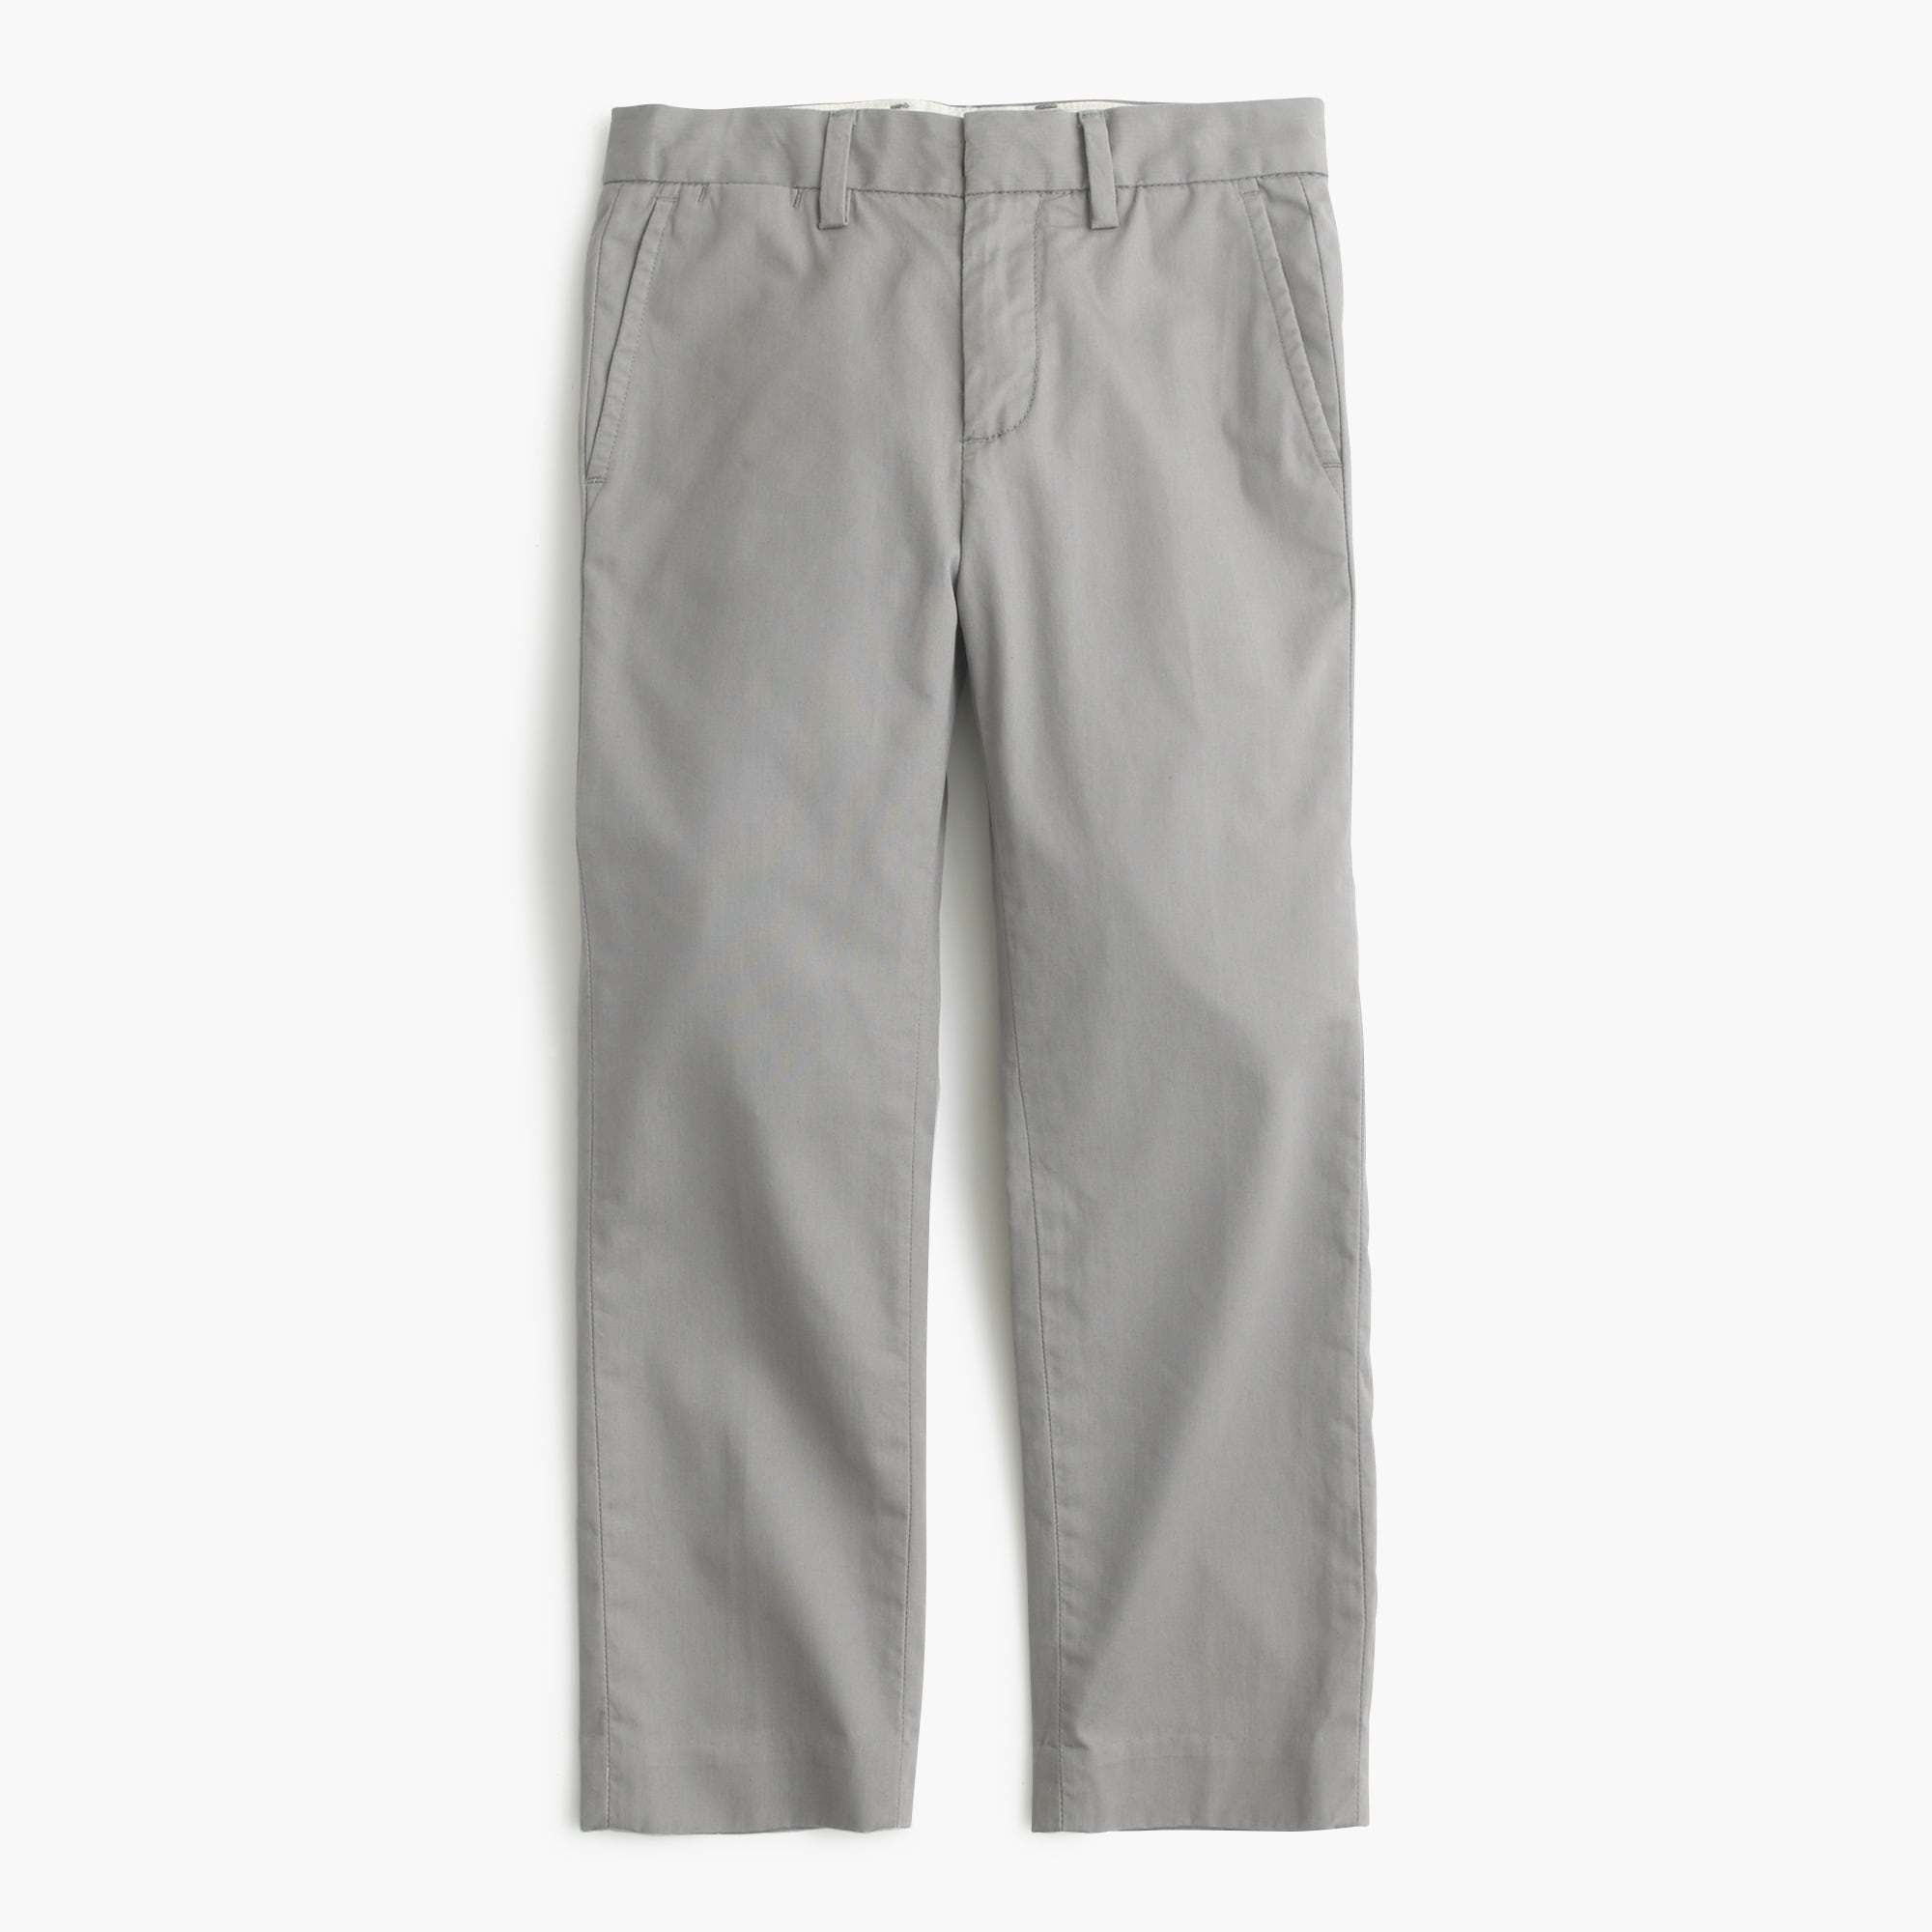 Image 1 for Boys' lightweight chino pant in slim fit